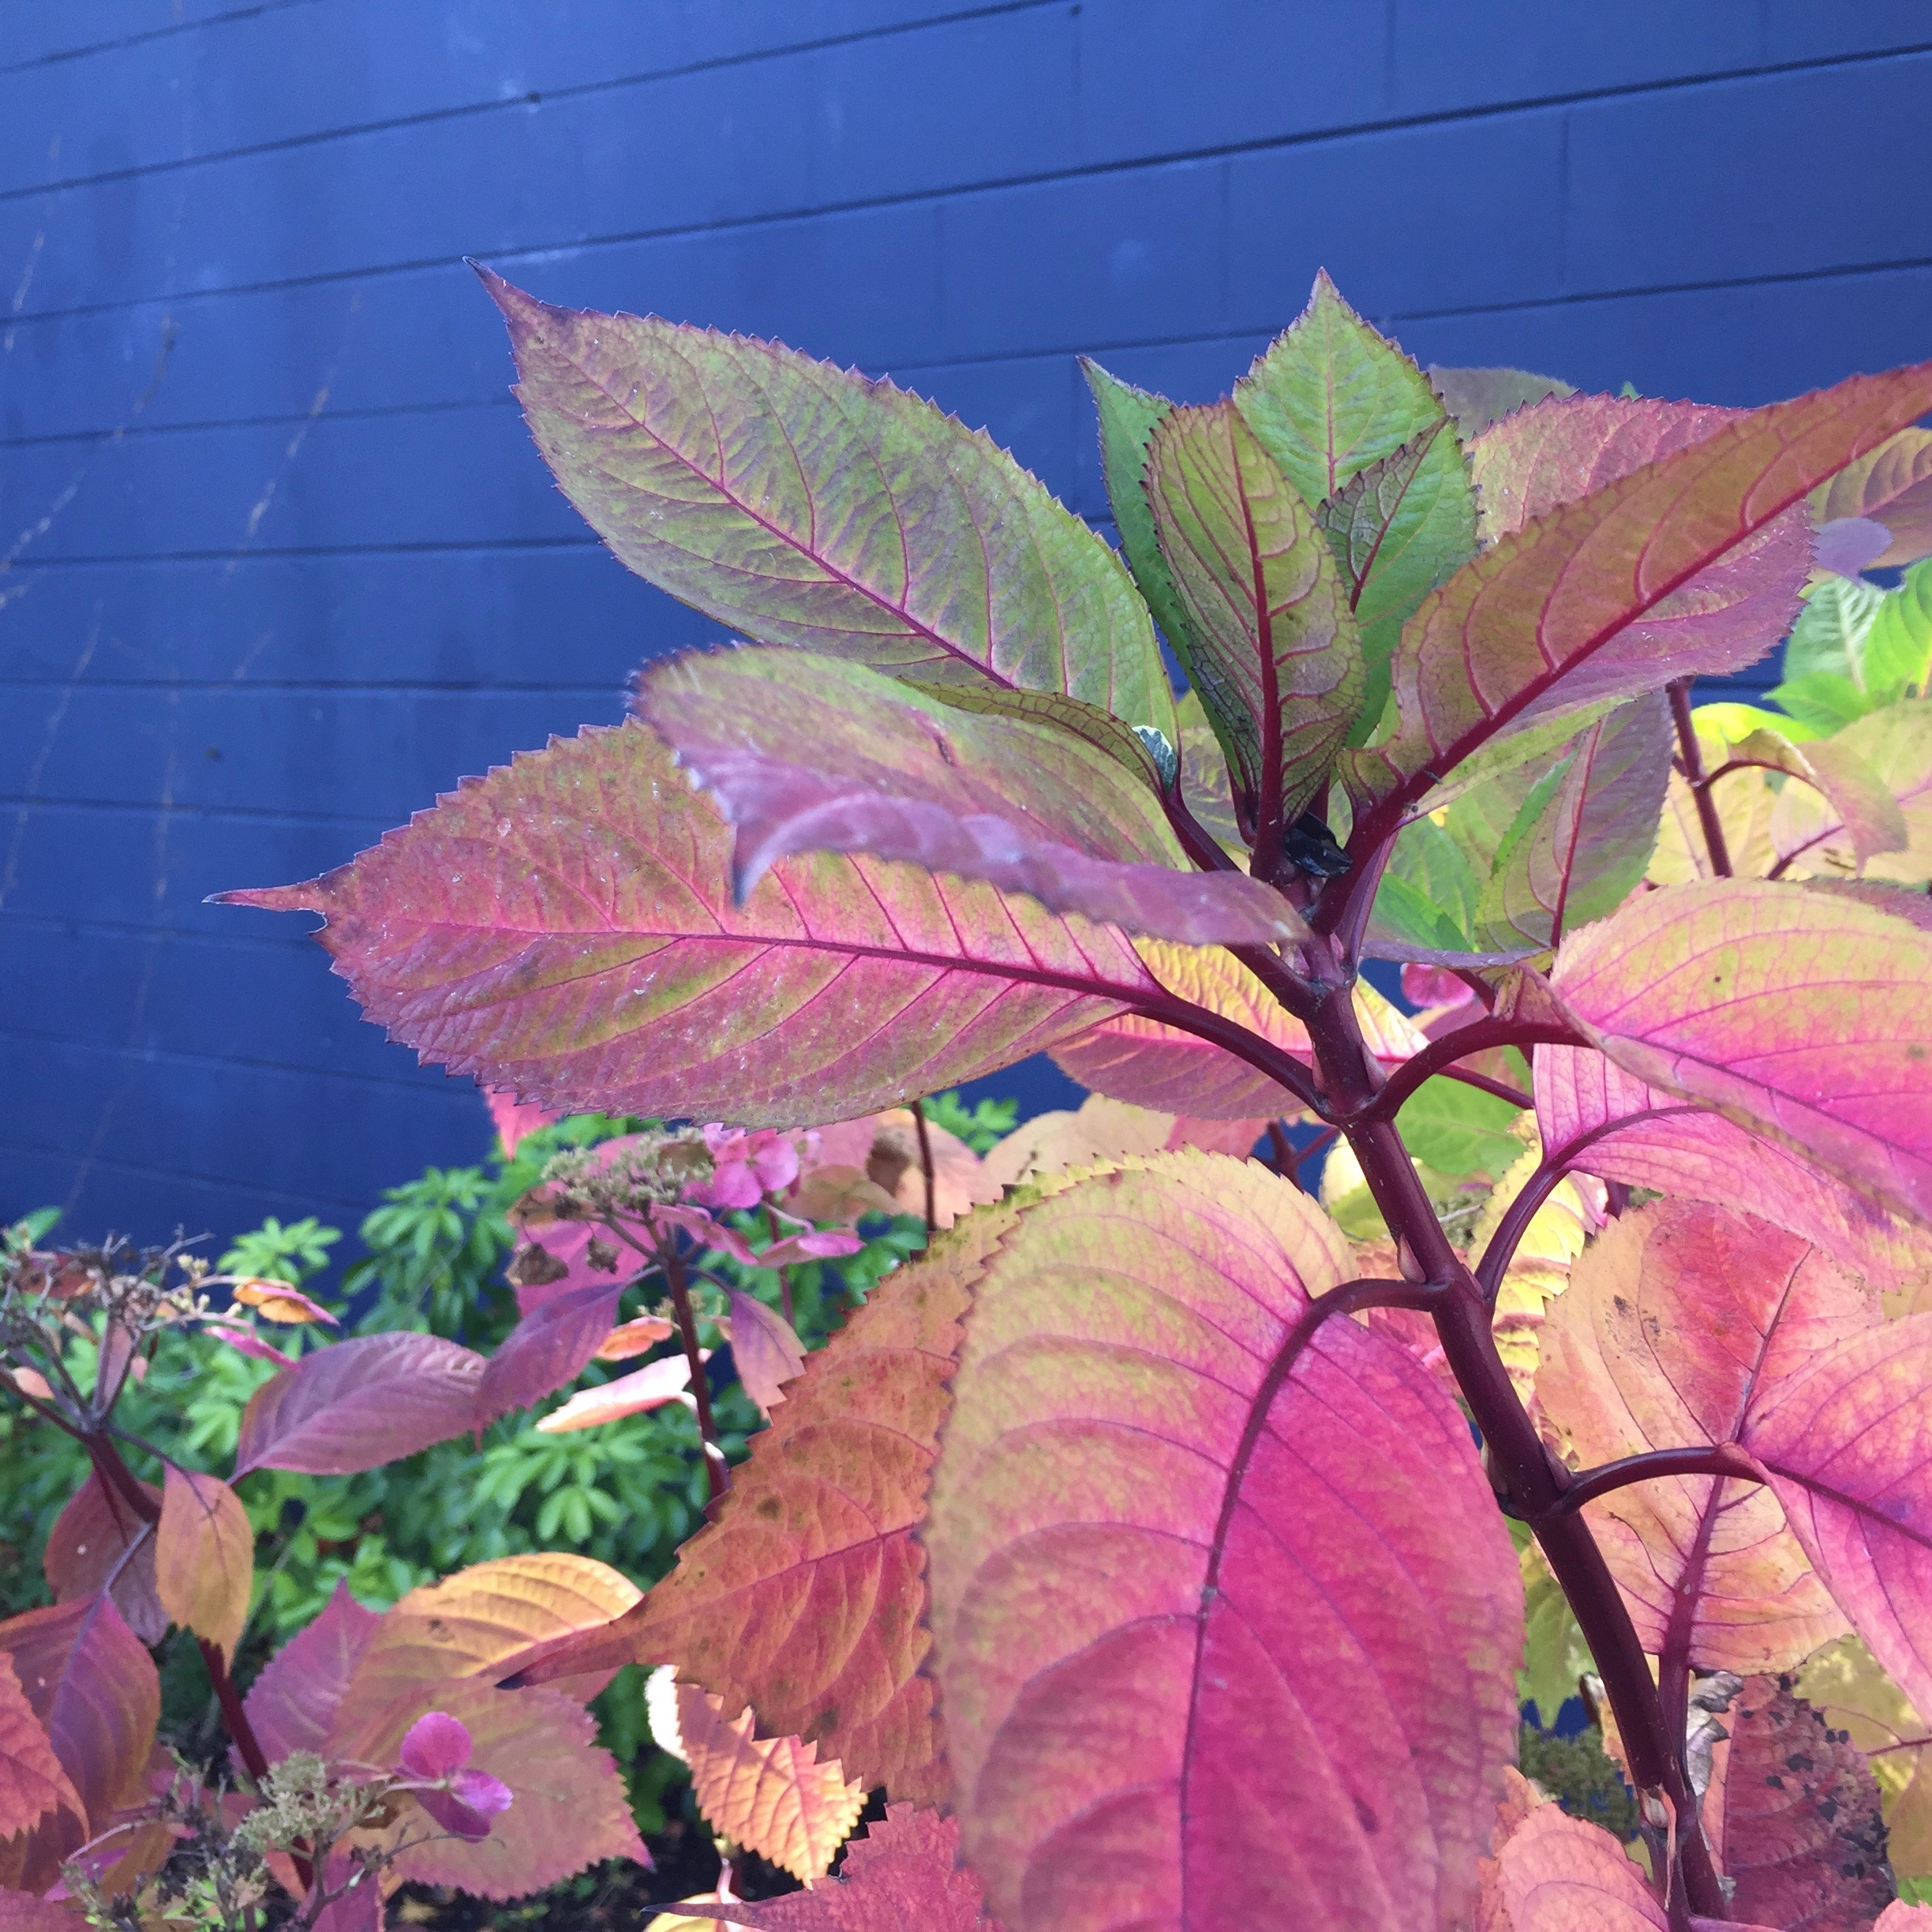 photography, pink leaves against blue wall